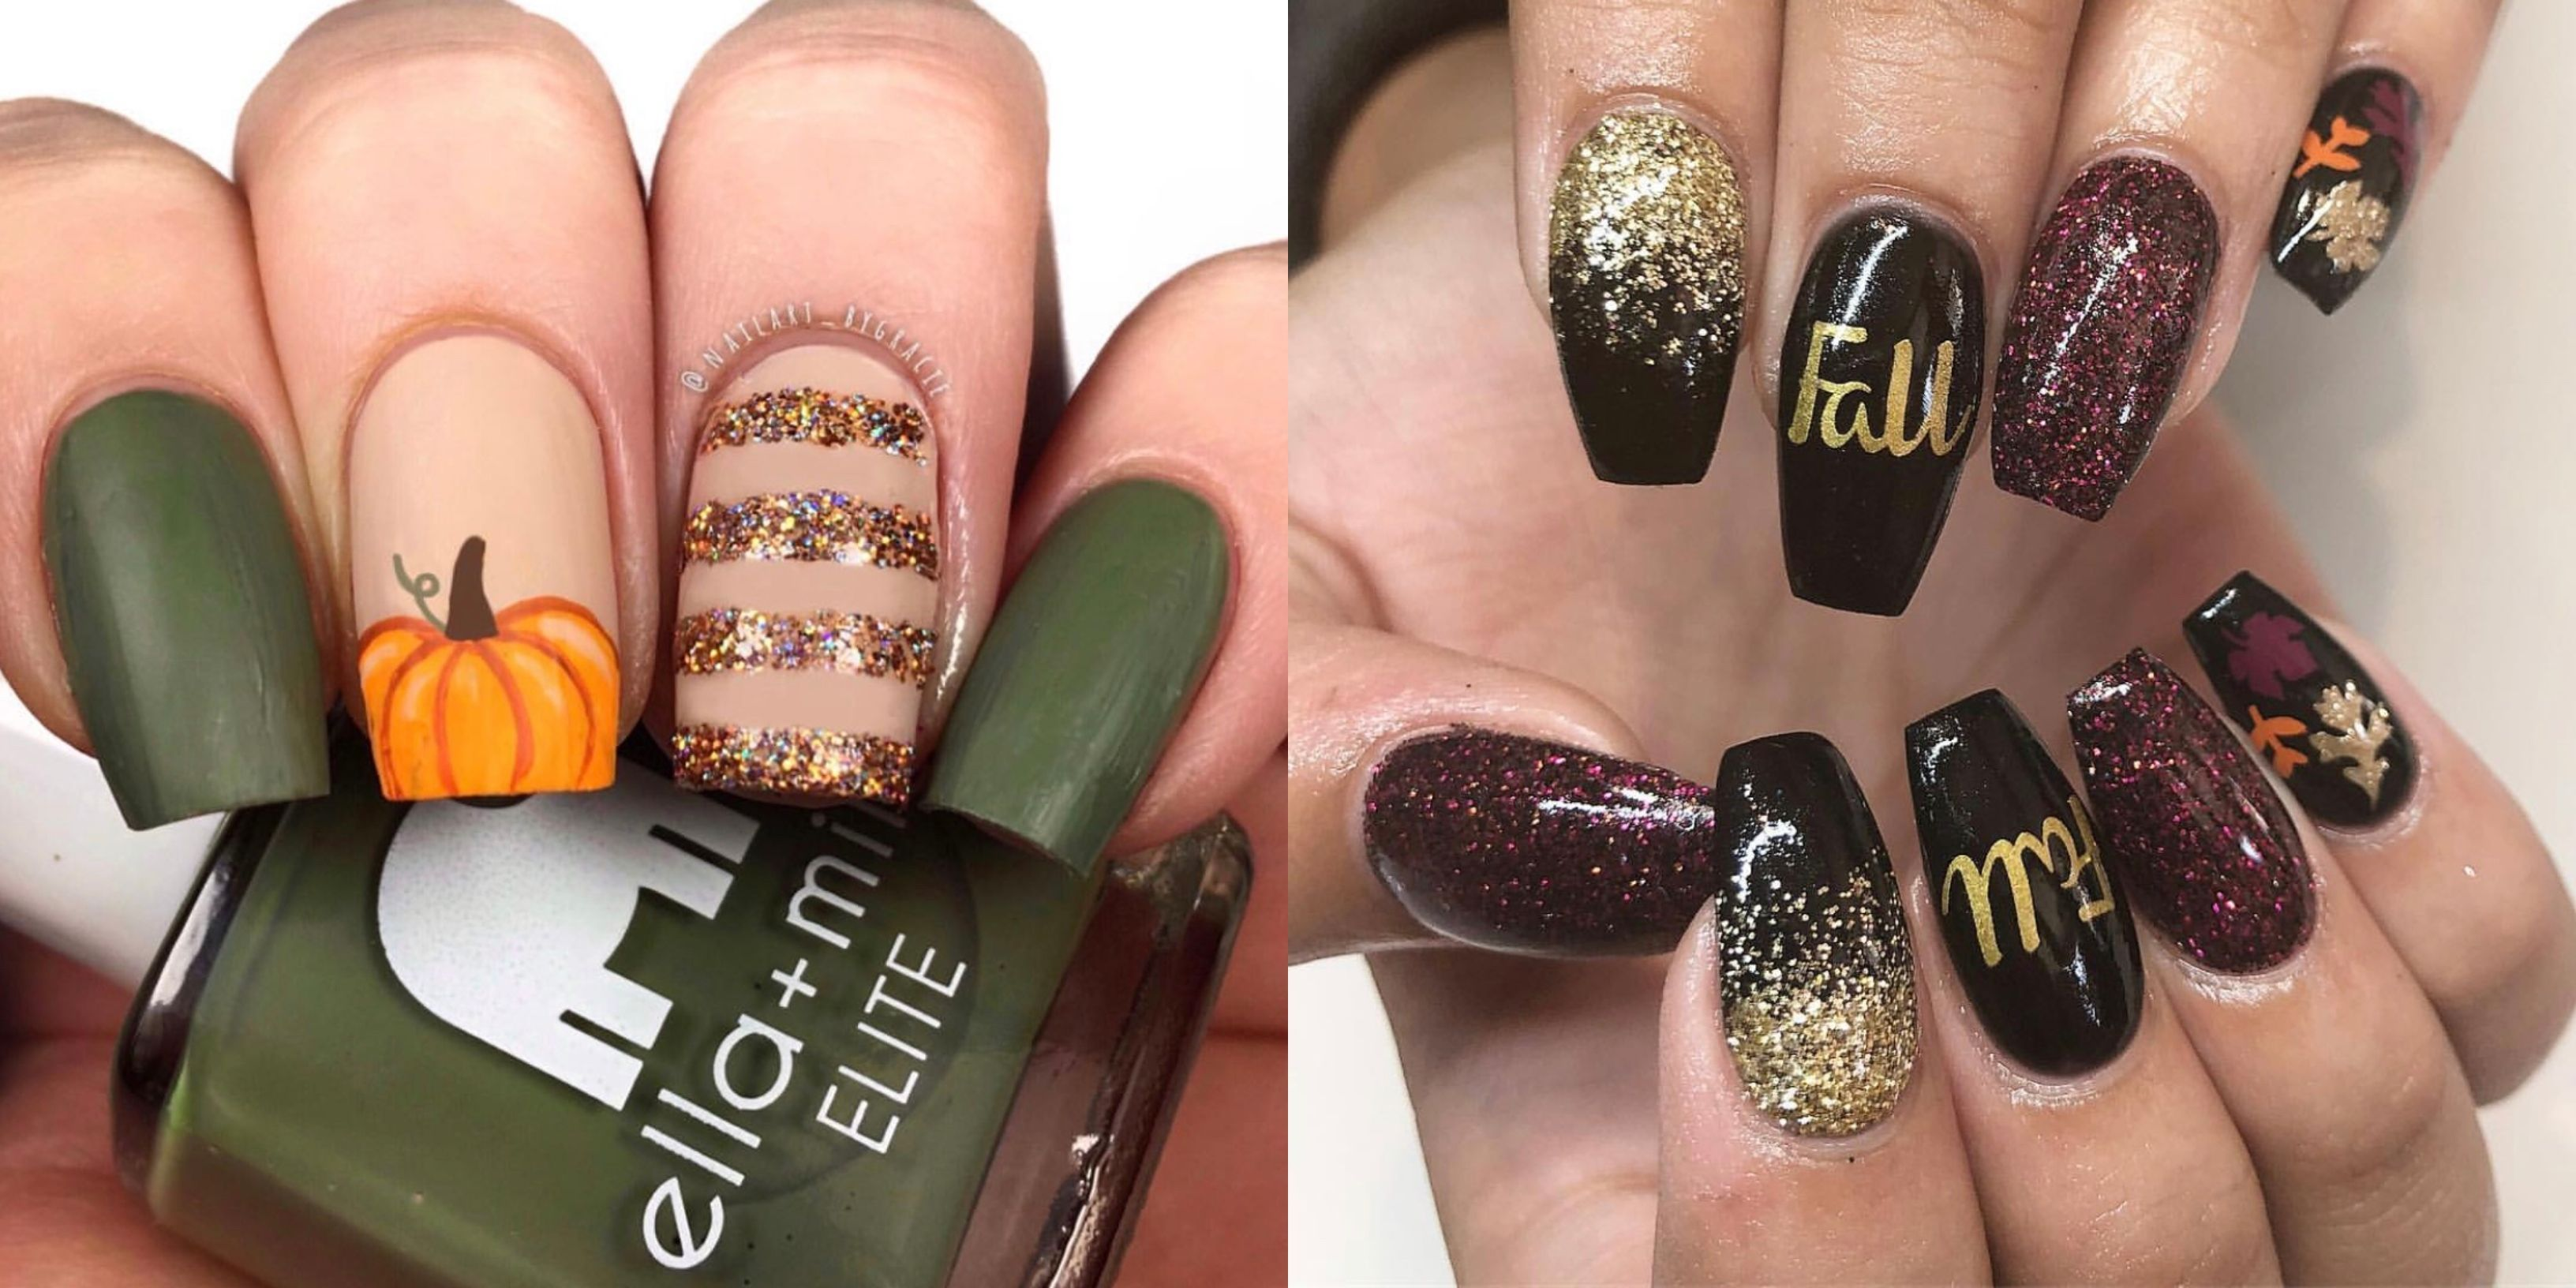 20 Best Fall Nail Designs Fall Nail Art Ideas